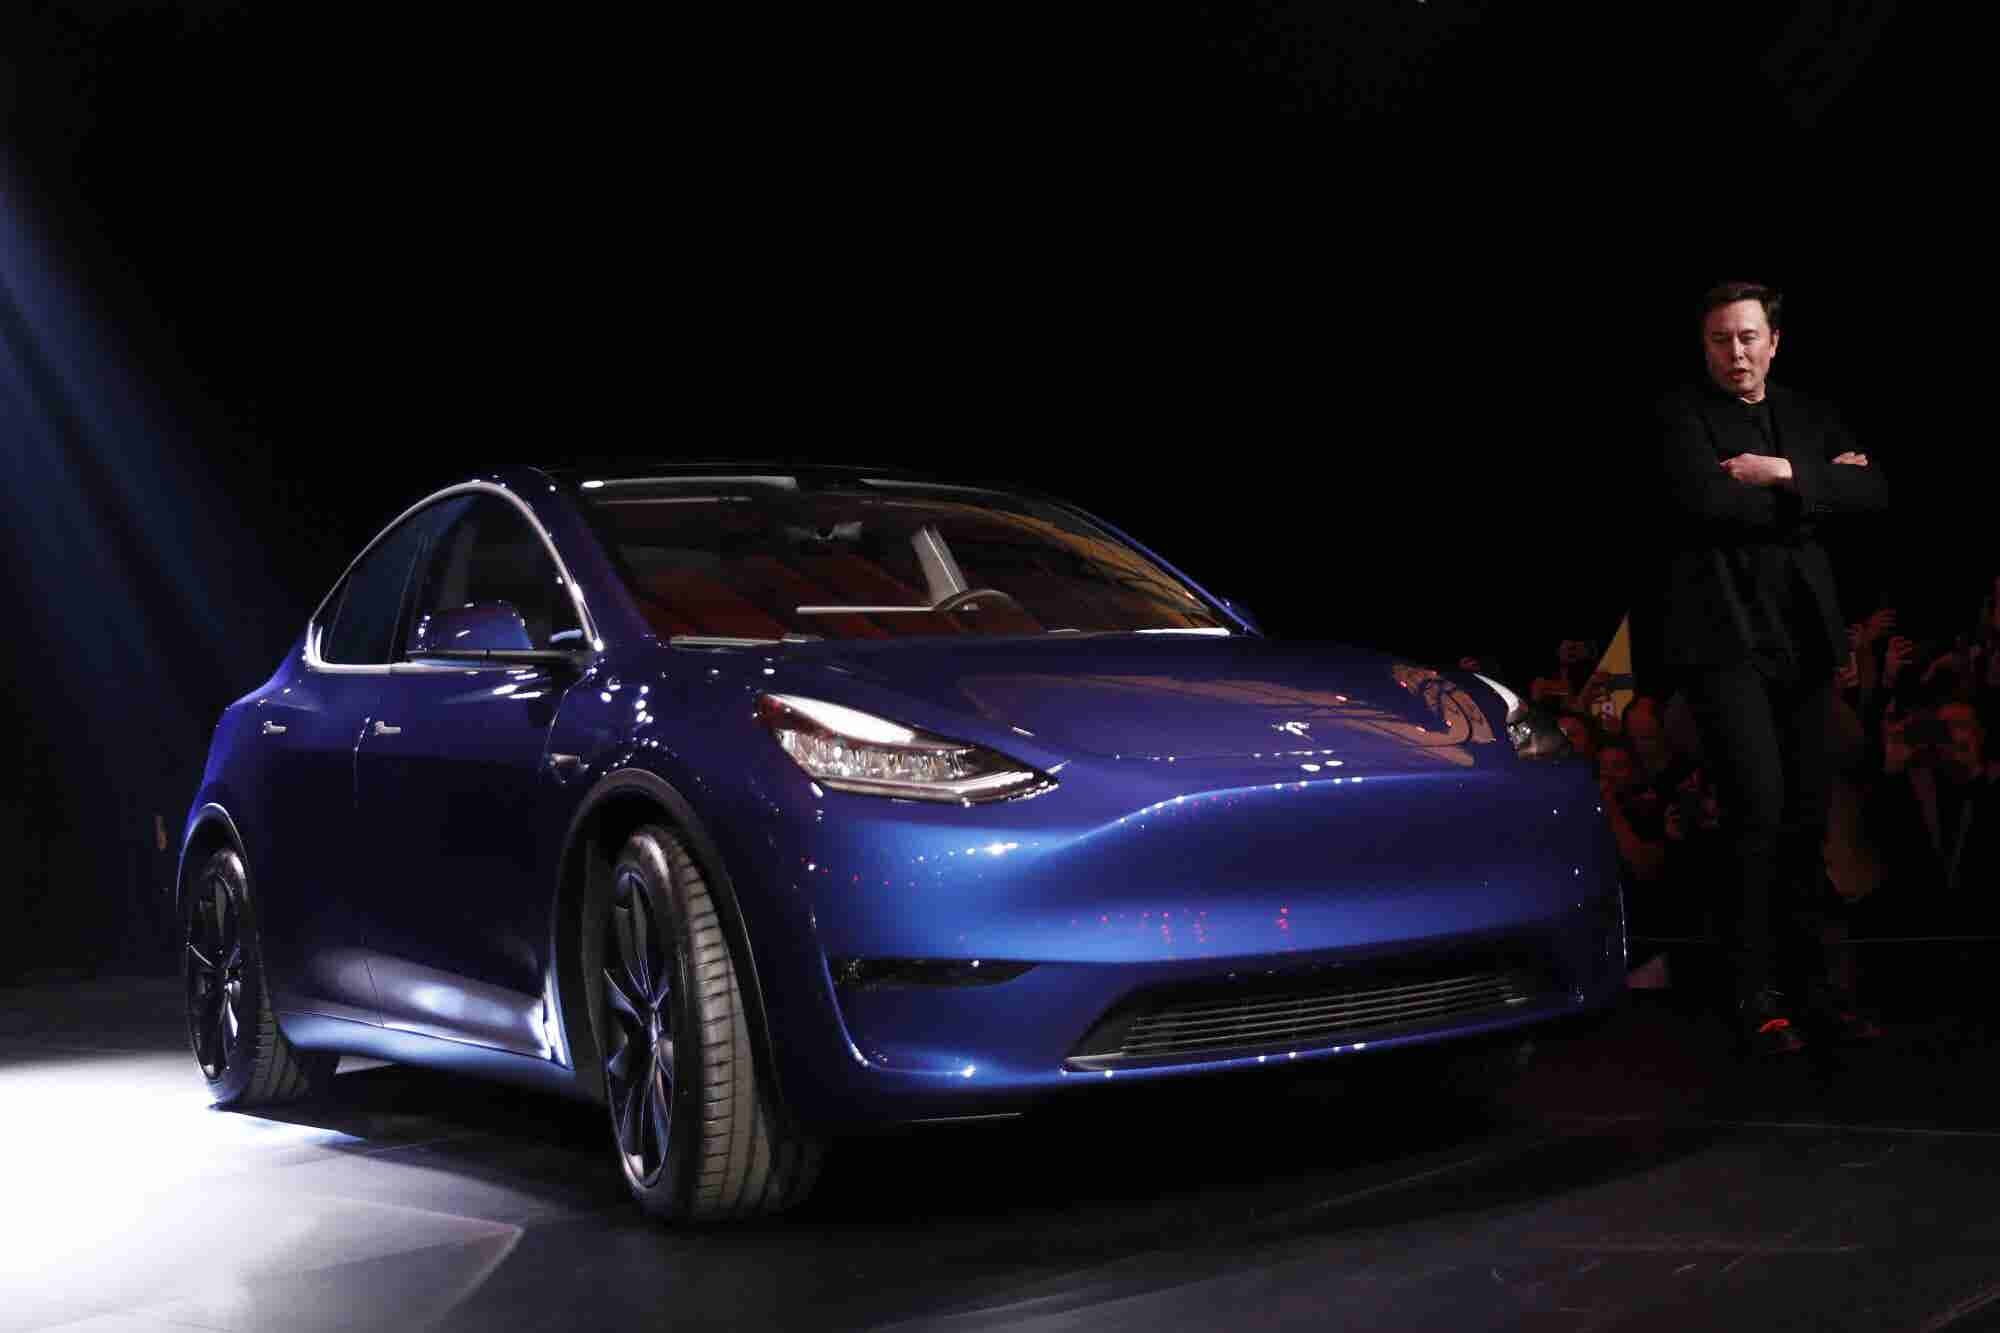 The New Tesla Model Y Gets Chilly Reception and Drives Company Shares...